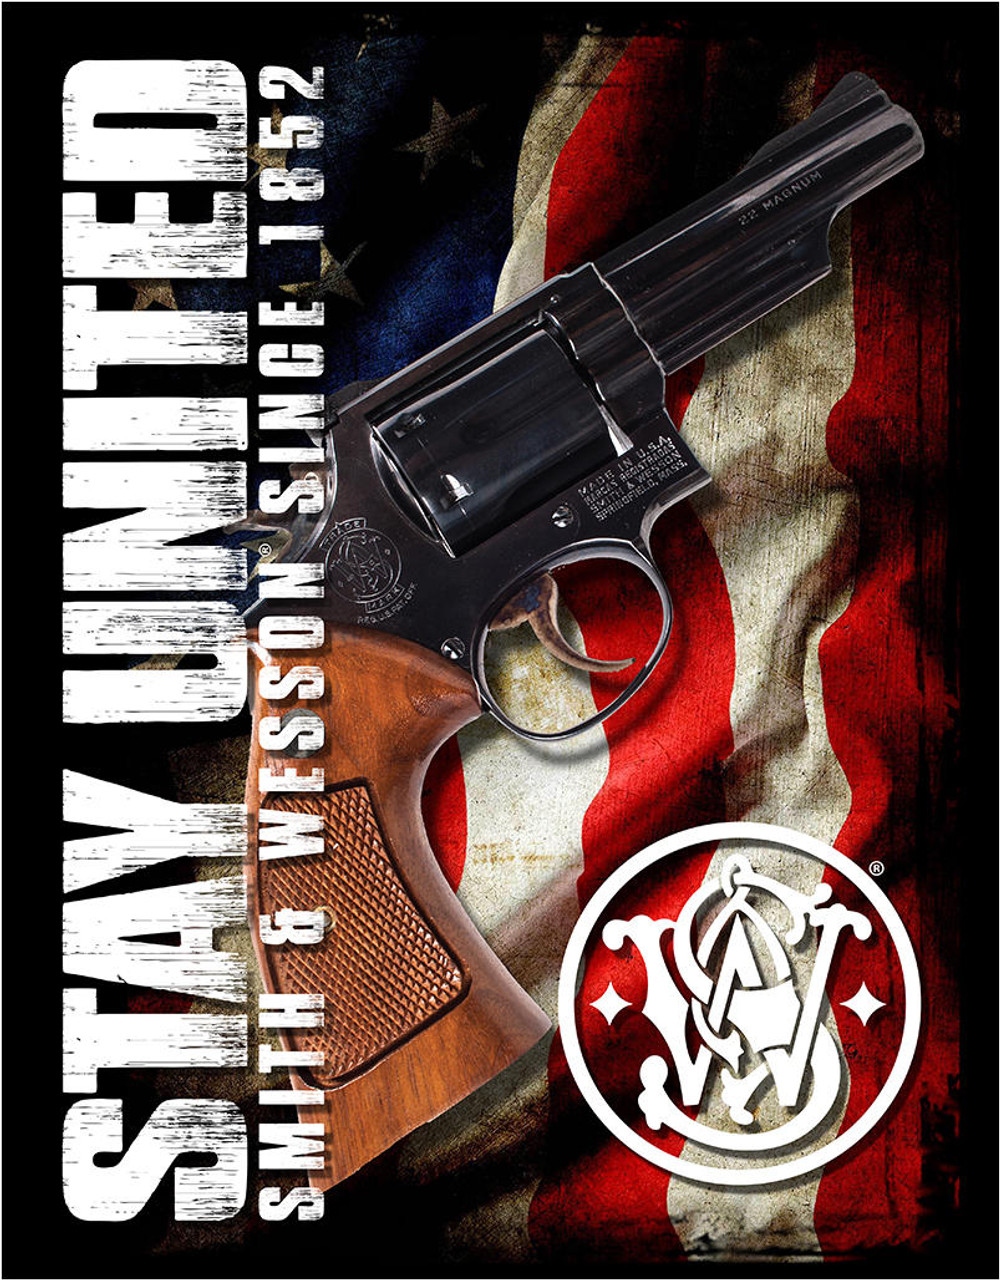 Smith and Wesson S and W - Stay United